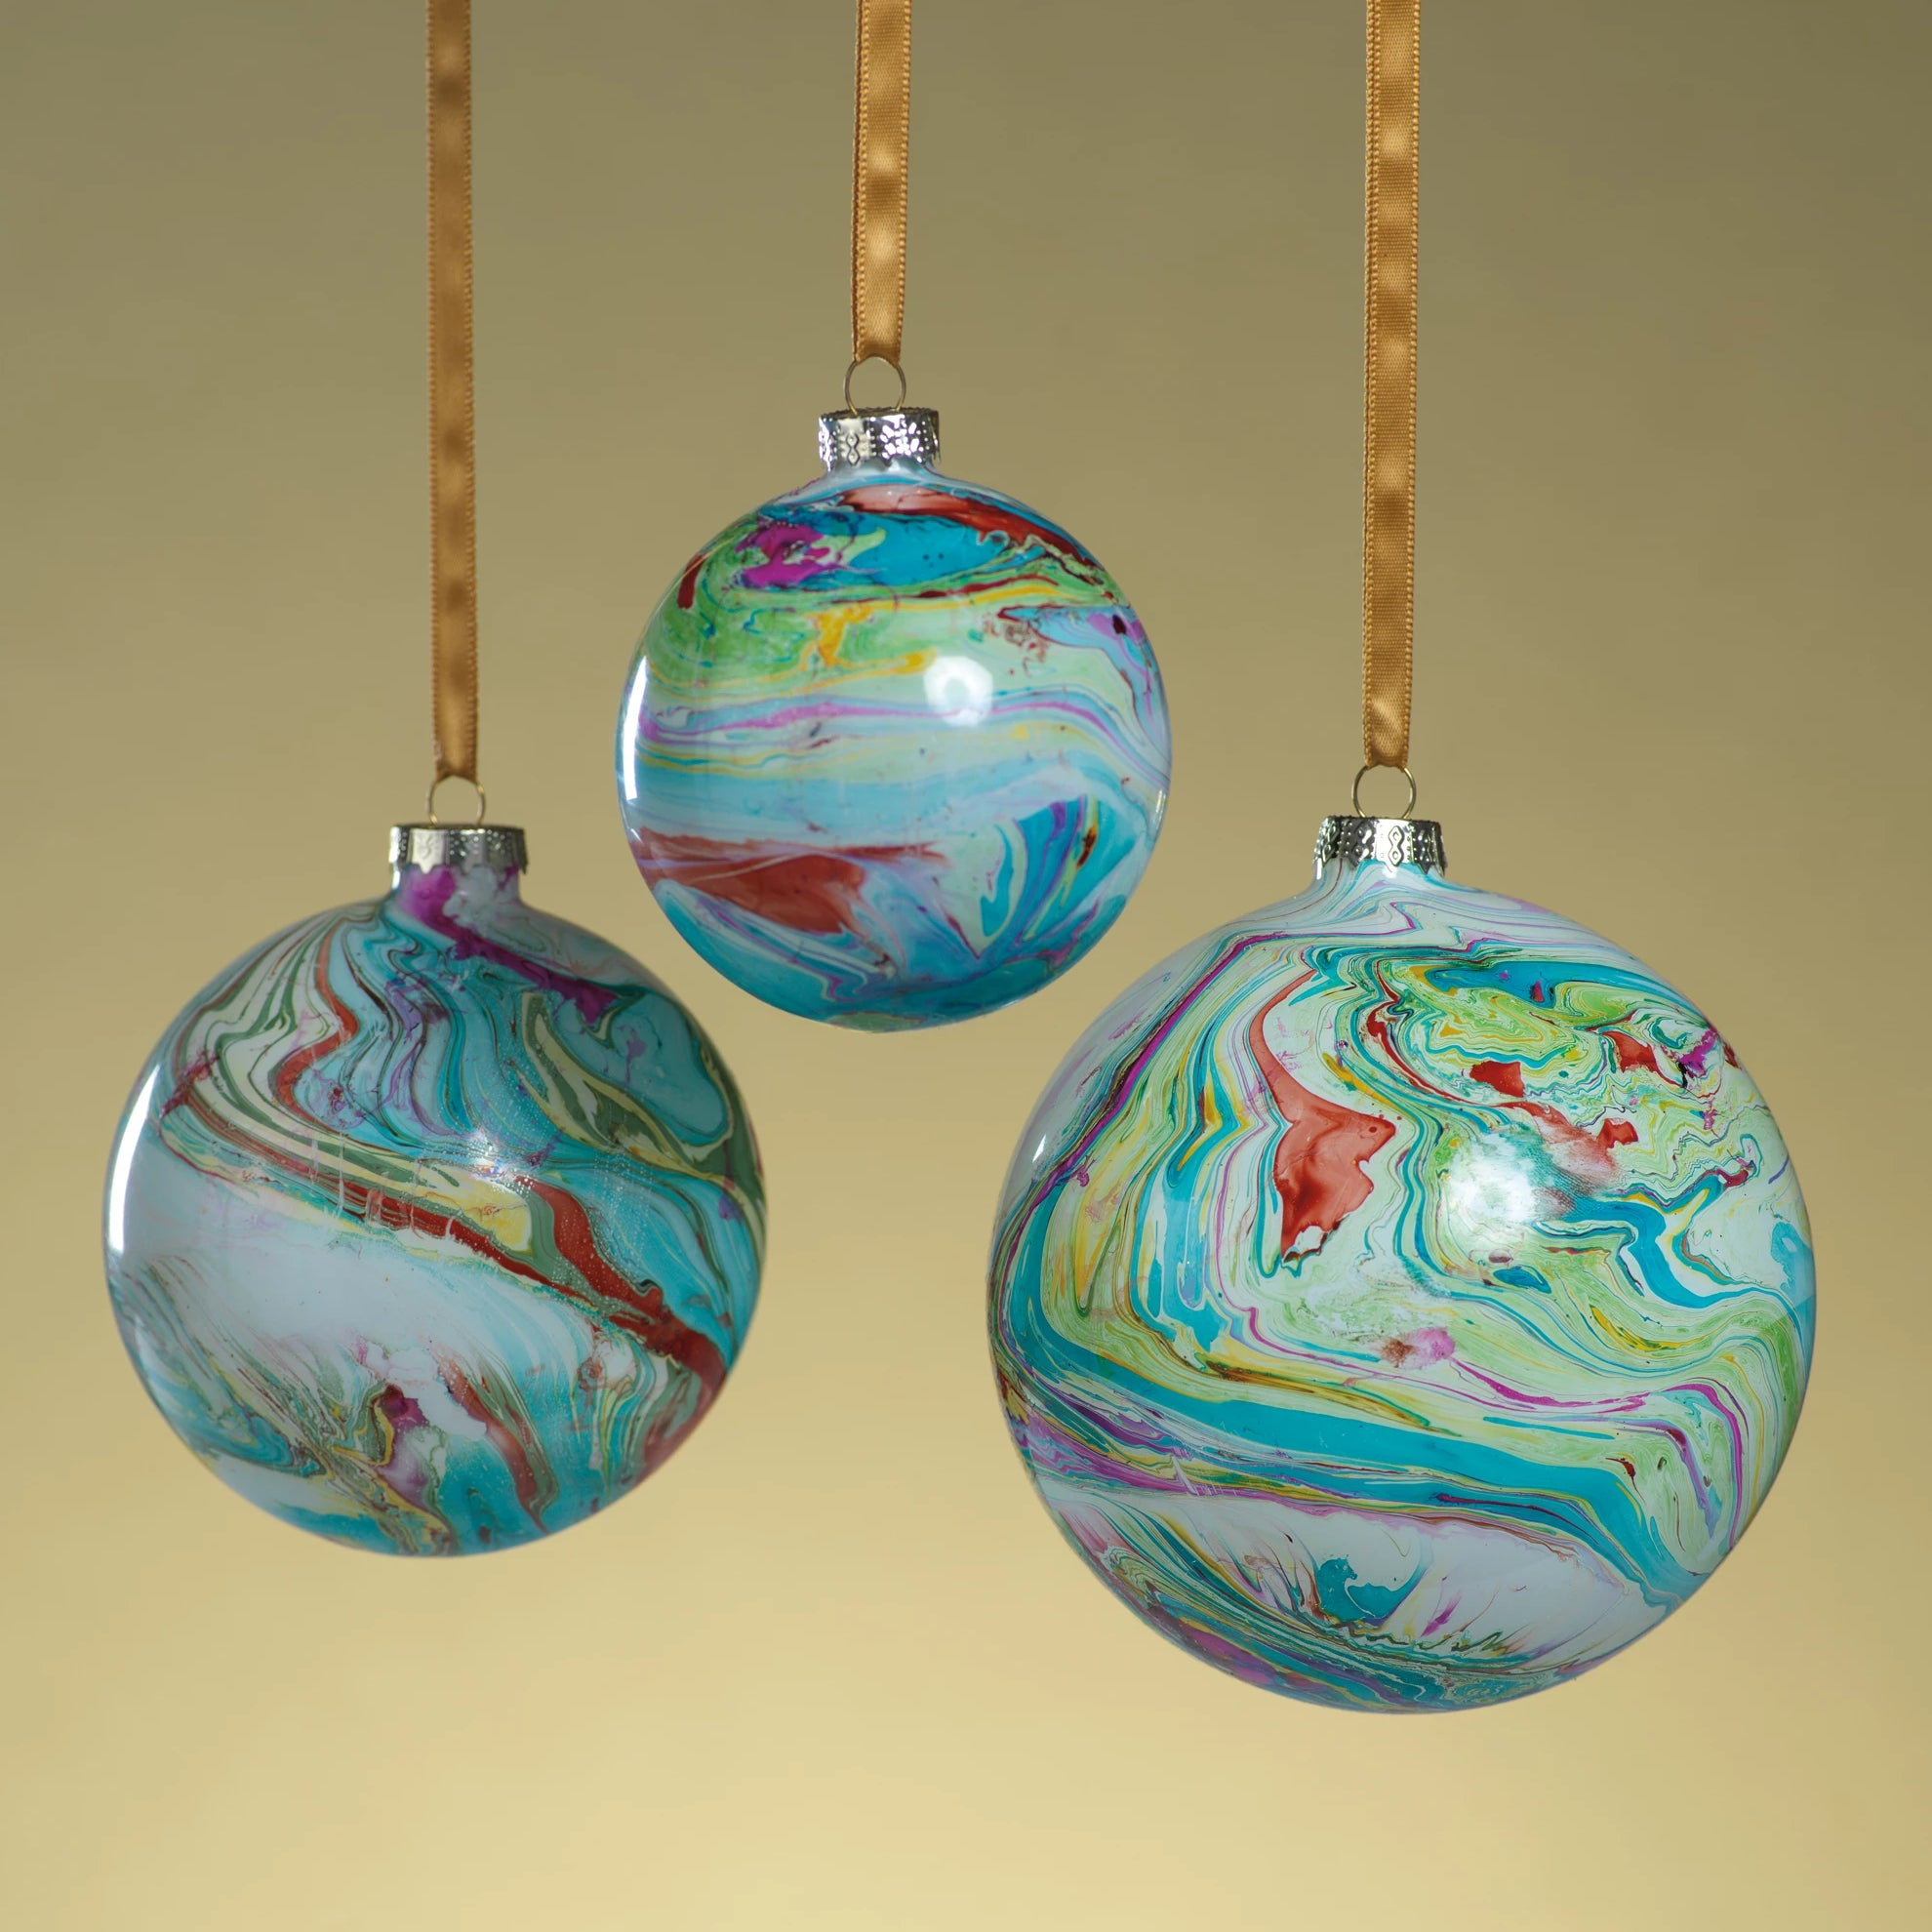 Marble Metallic Ornament - Multi Color - CARLYLE AVENUE